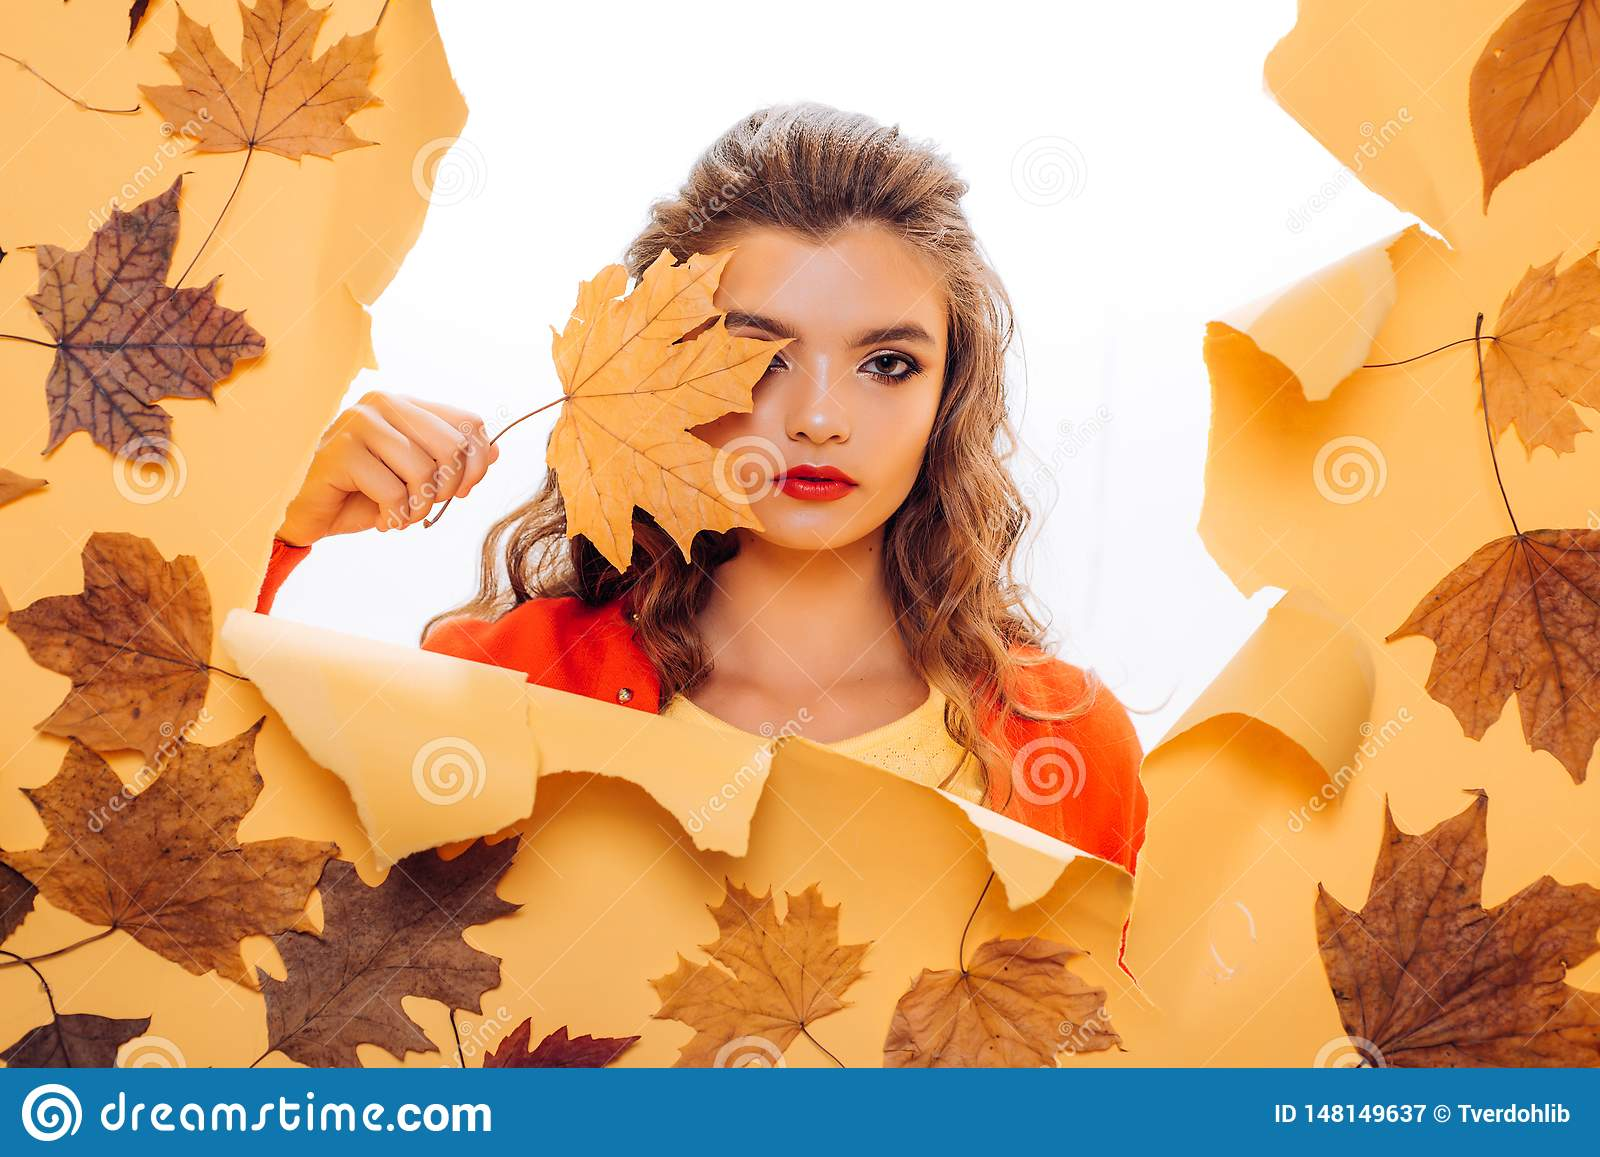 Fall look. Makeup girl peek through torn paper. Pretty girl cover face with autumn leaf. Young woman look out of hole